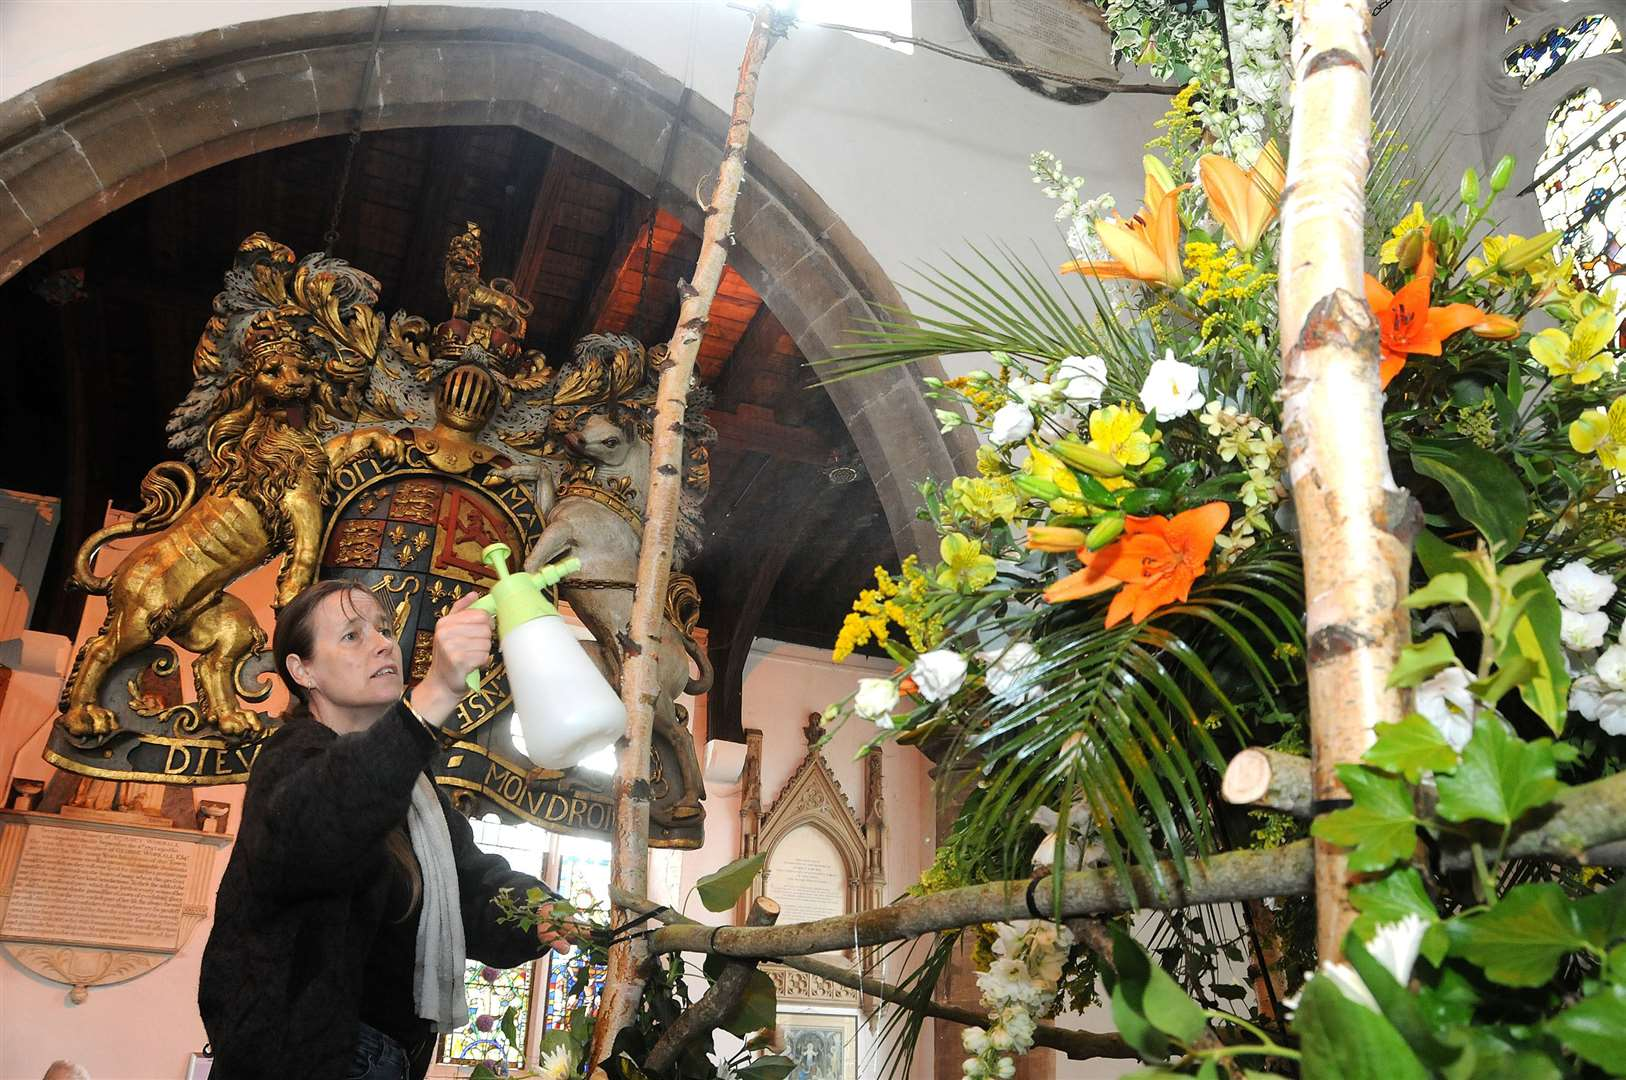 Sadly the Rose Fair flower festival at St Peter's Church, Wisbech has been cancelled this summer.